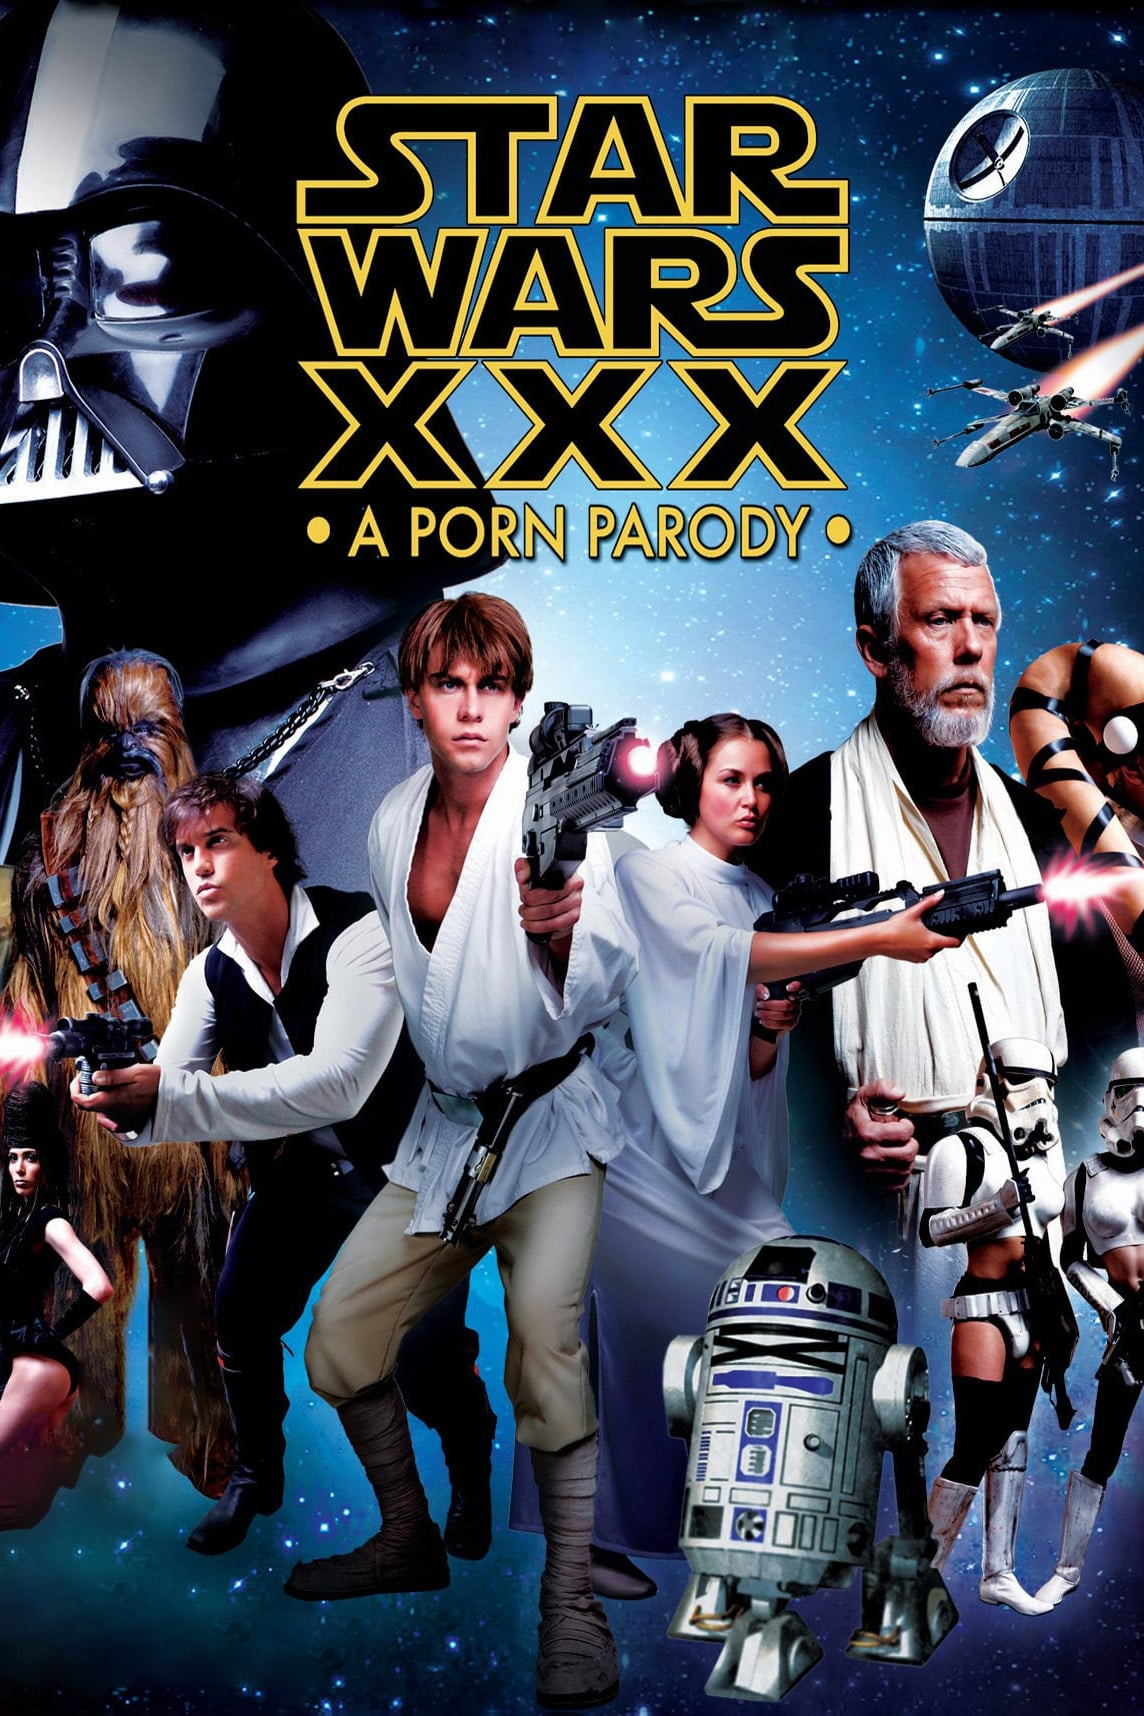 New Porn Parody showing xxx images for star wars a new hope xxx | www